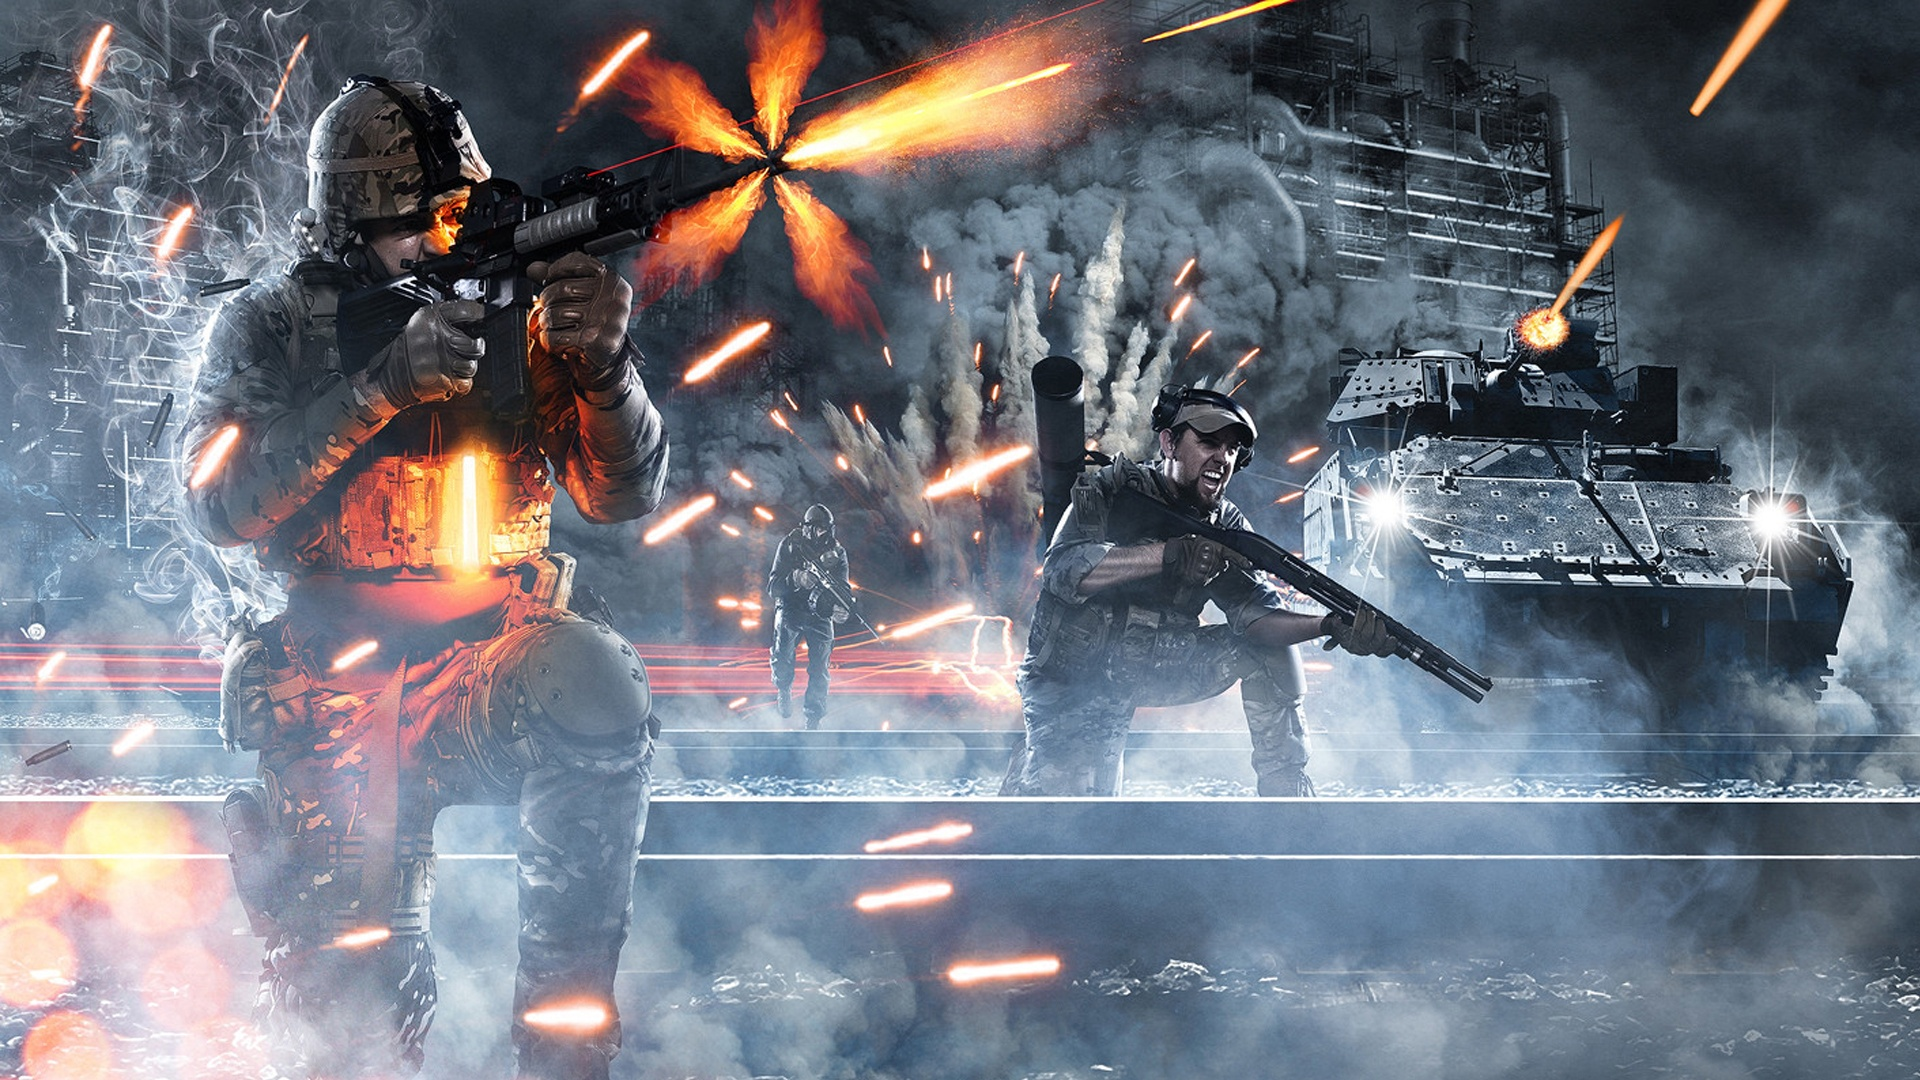 pics photos battlefield 4 wallpaper